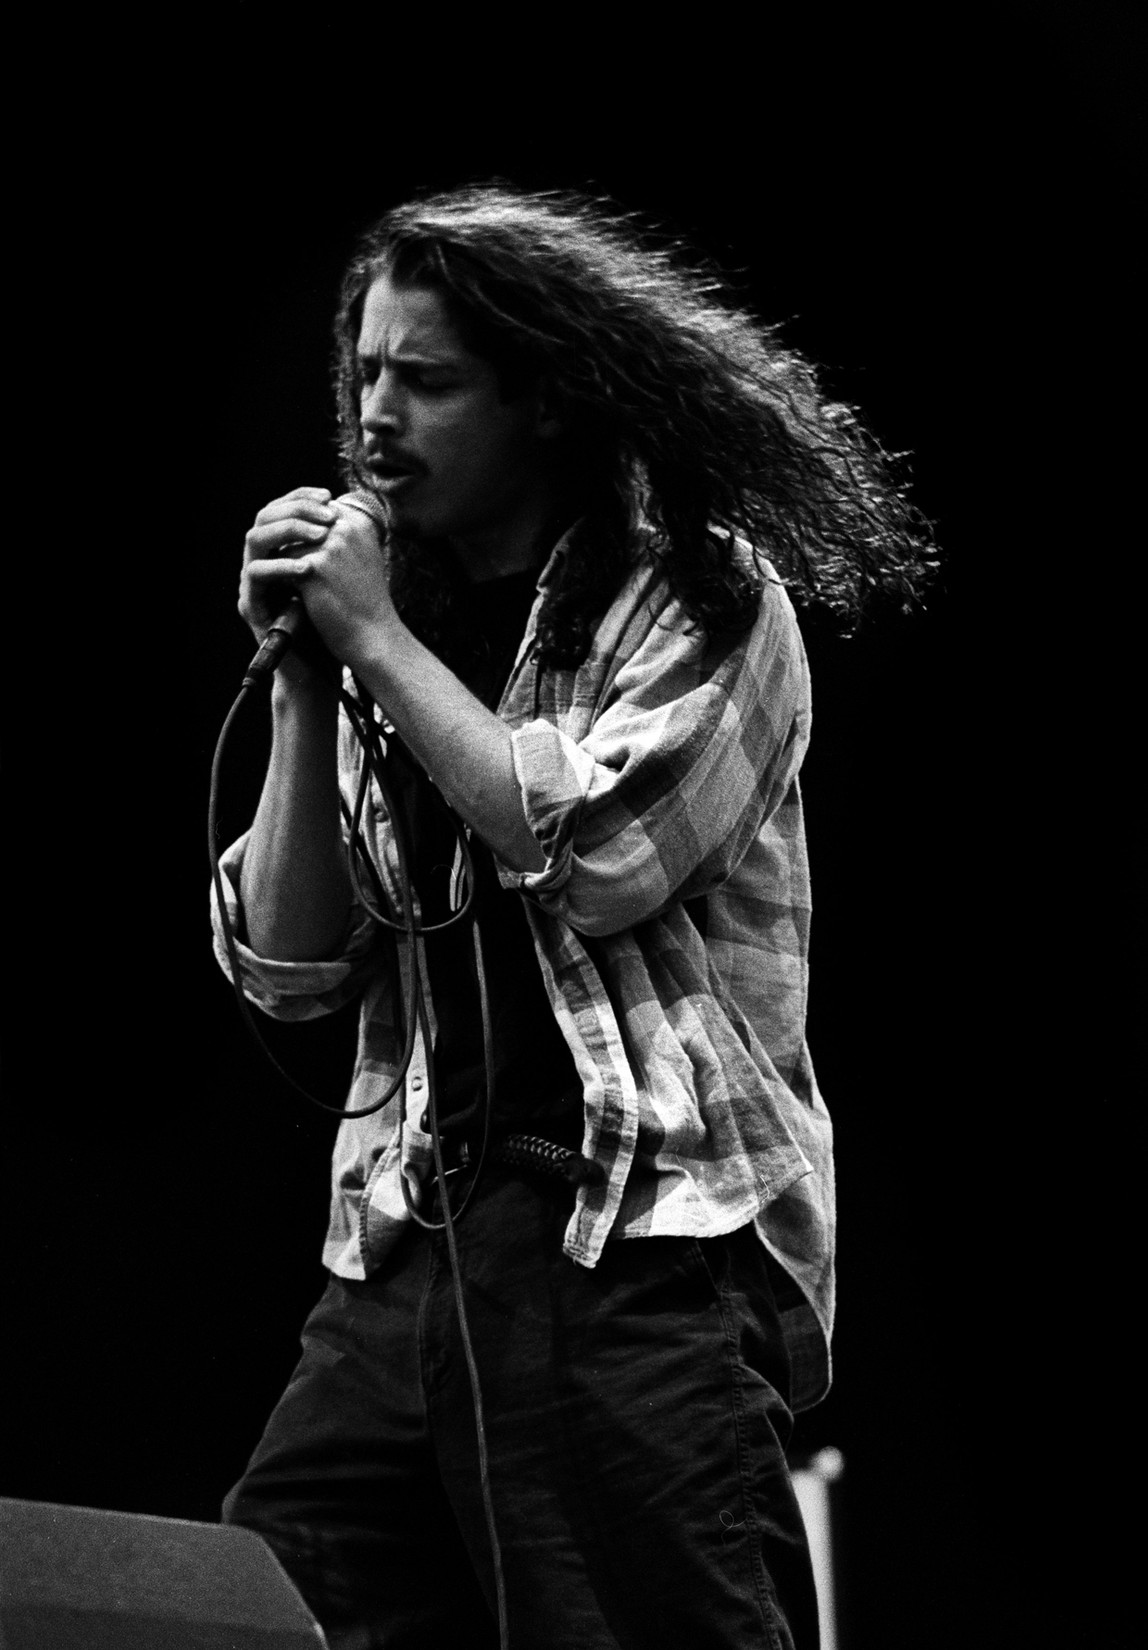 Chris Cornell of Soundgarden performs live on stage at Pinkpop festival in Landgraaf, Netherlands on June 8, 1992.